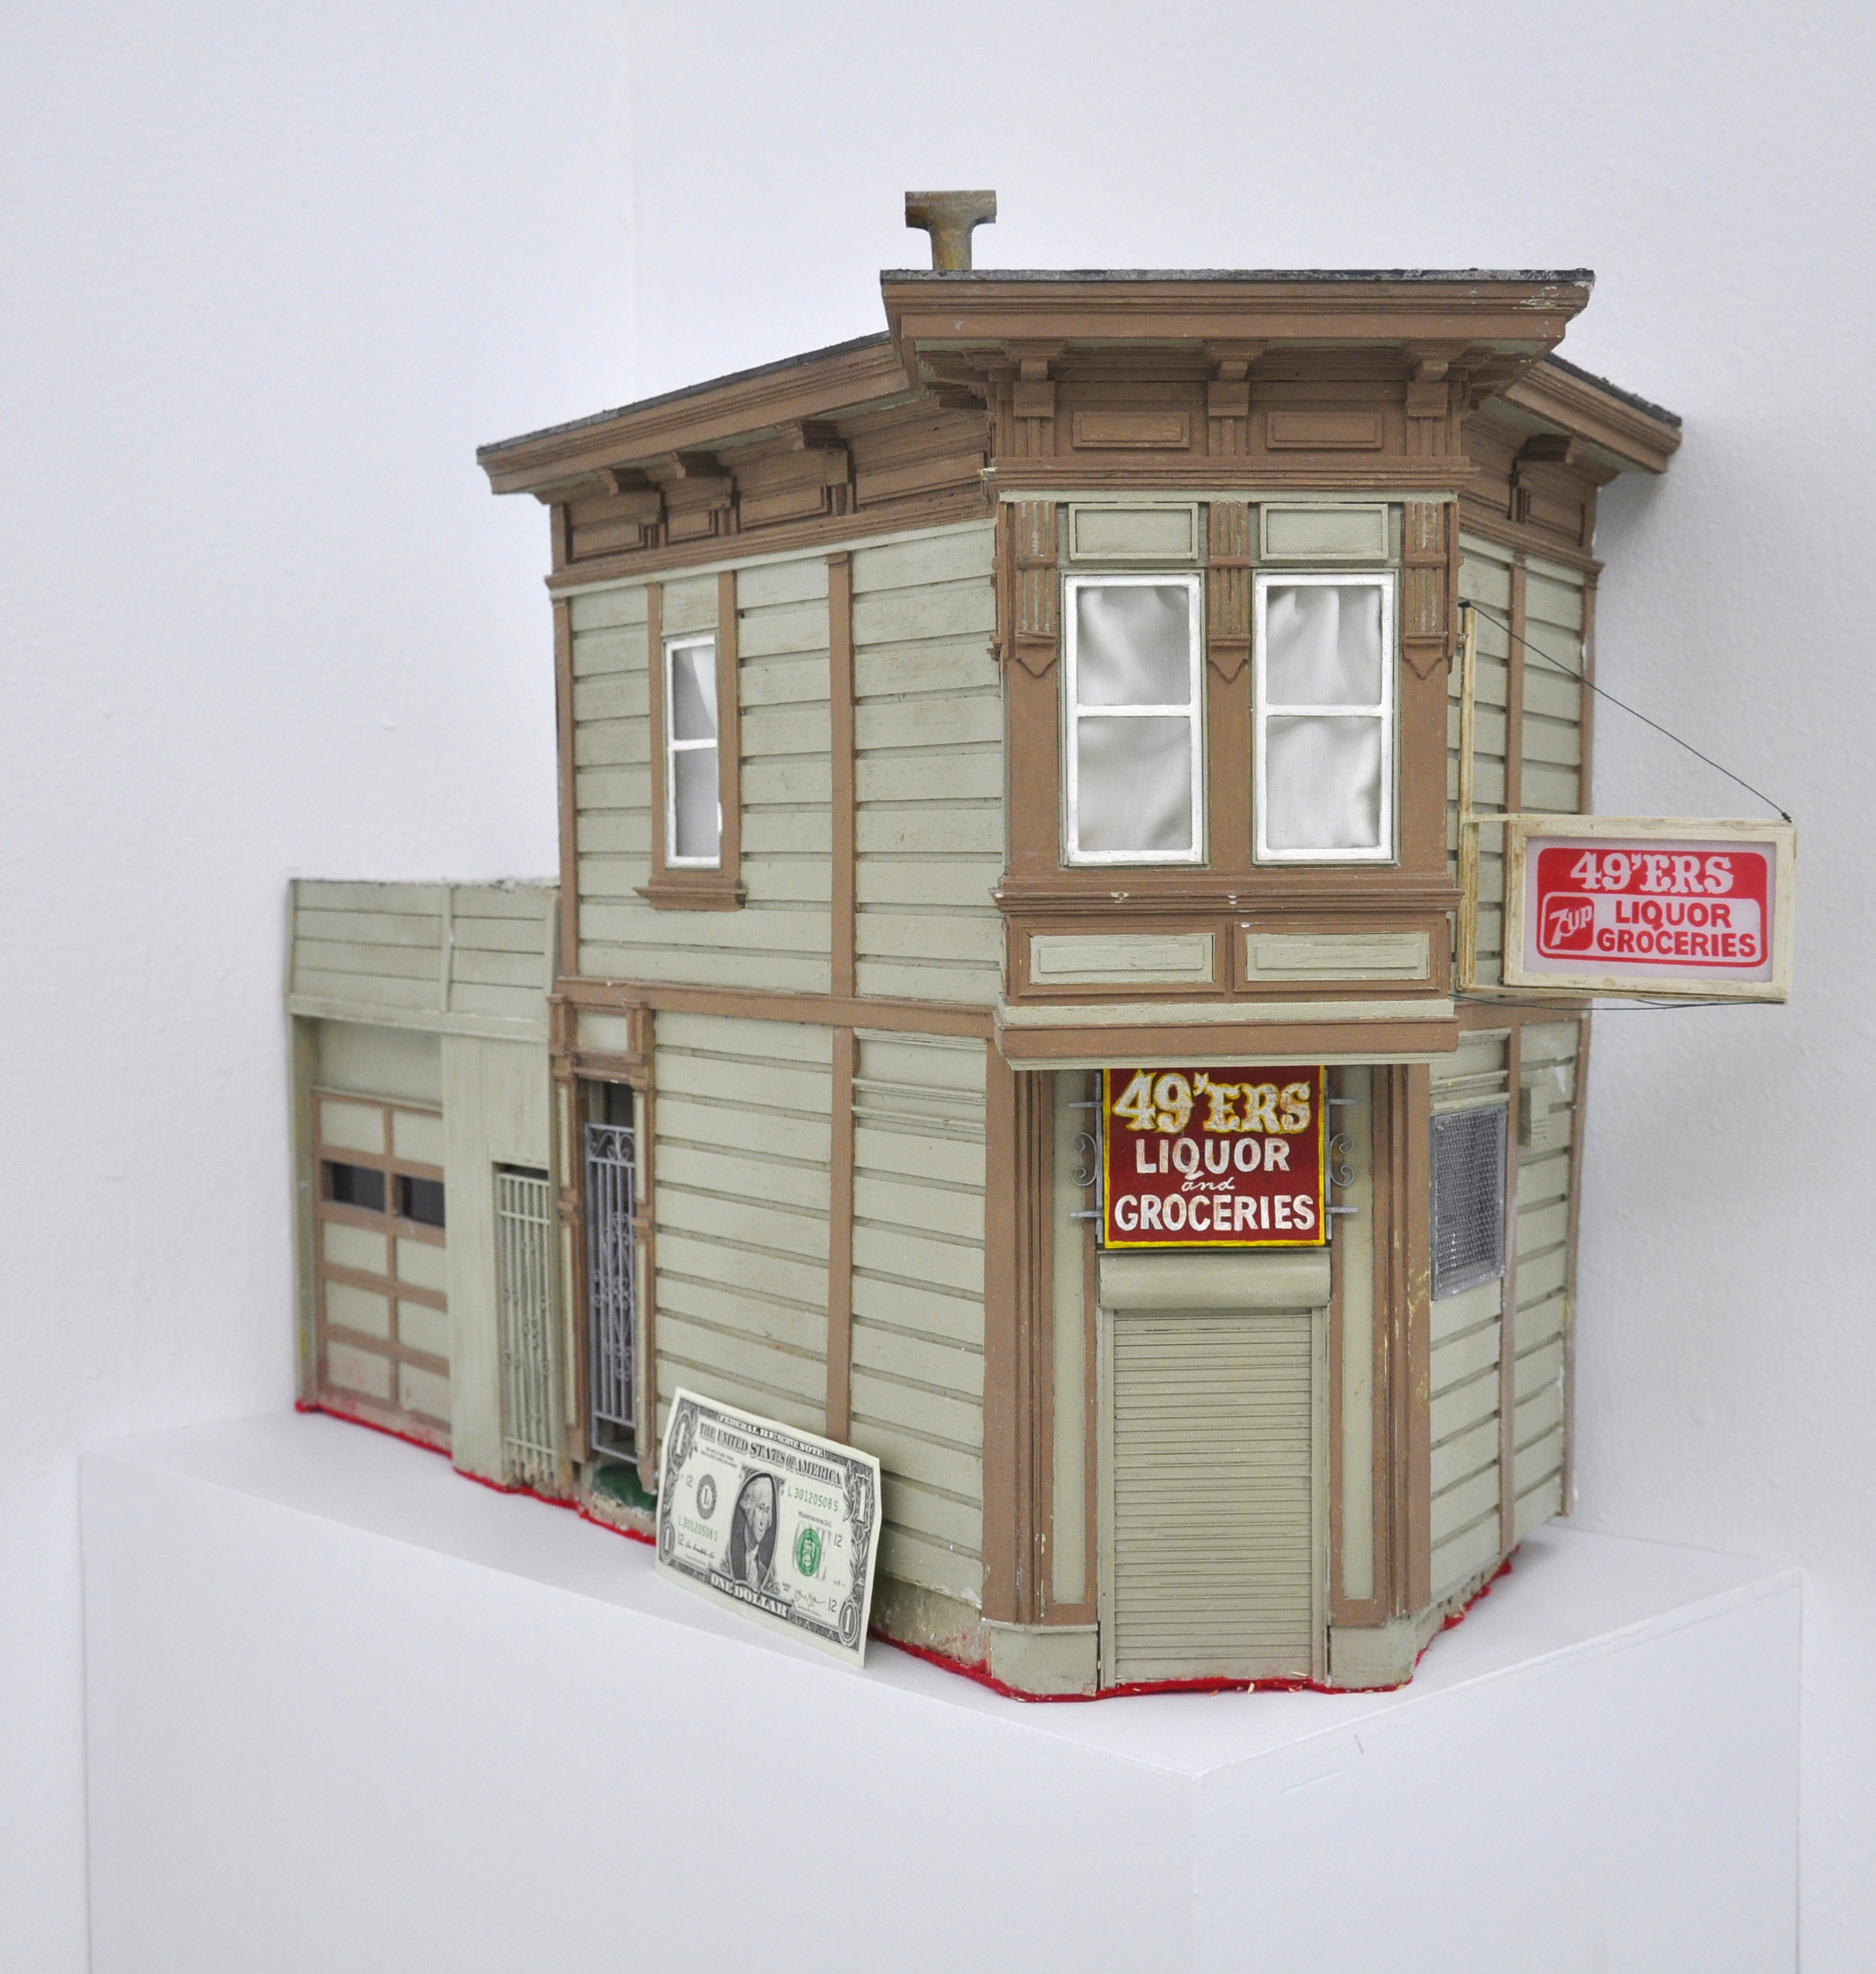 Malcolm Kenter, 49ers Liquor and Groceries, 2017, Latex on Wood, Metal, Plastic, 26 x 18.5 x 16in